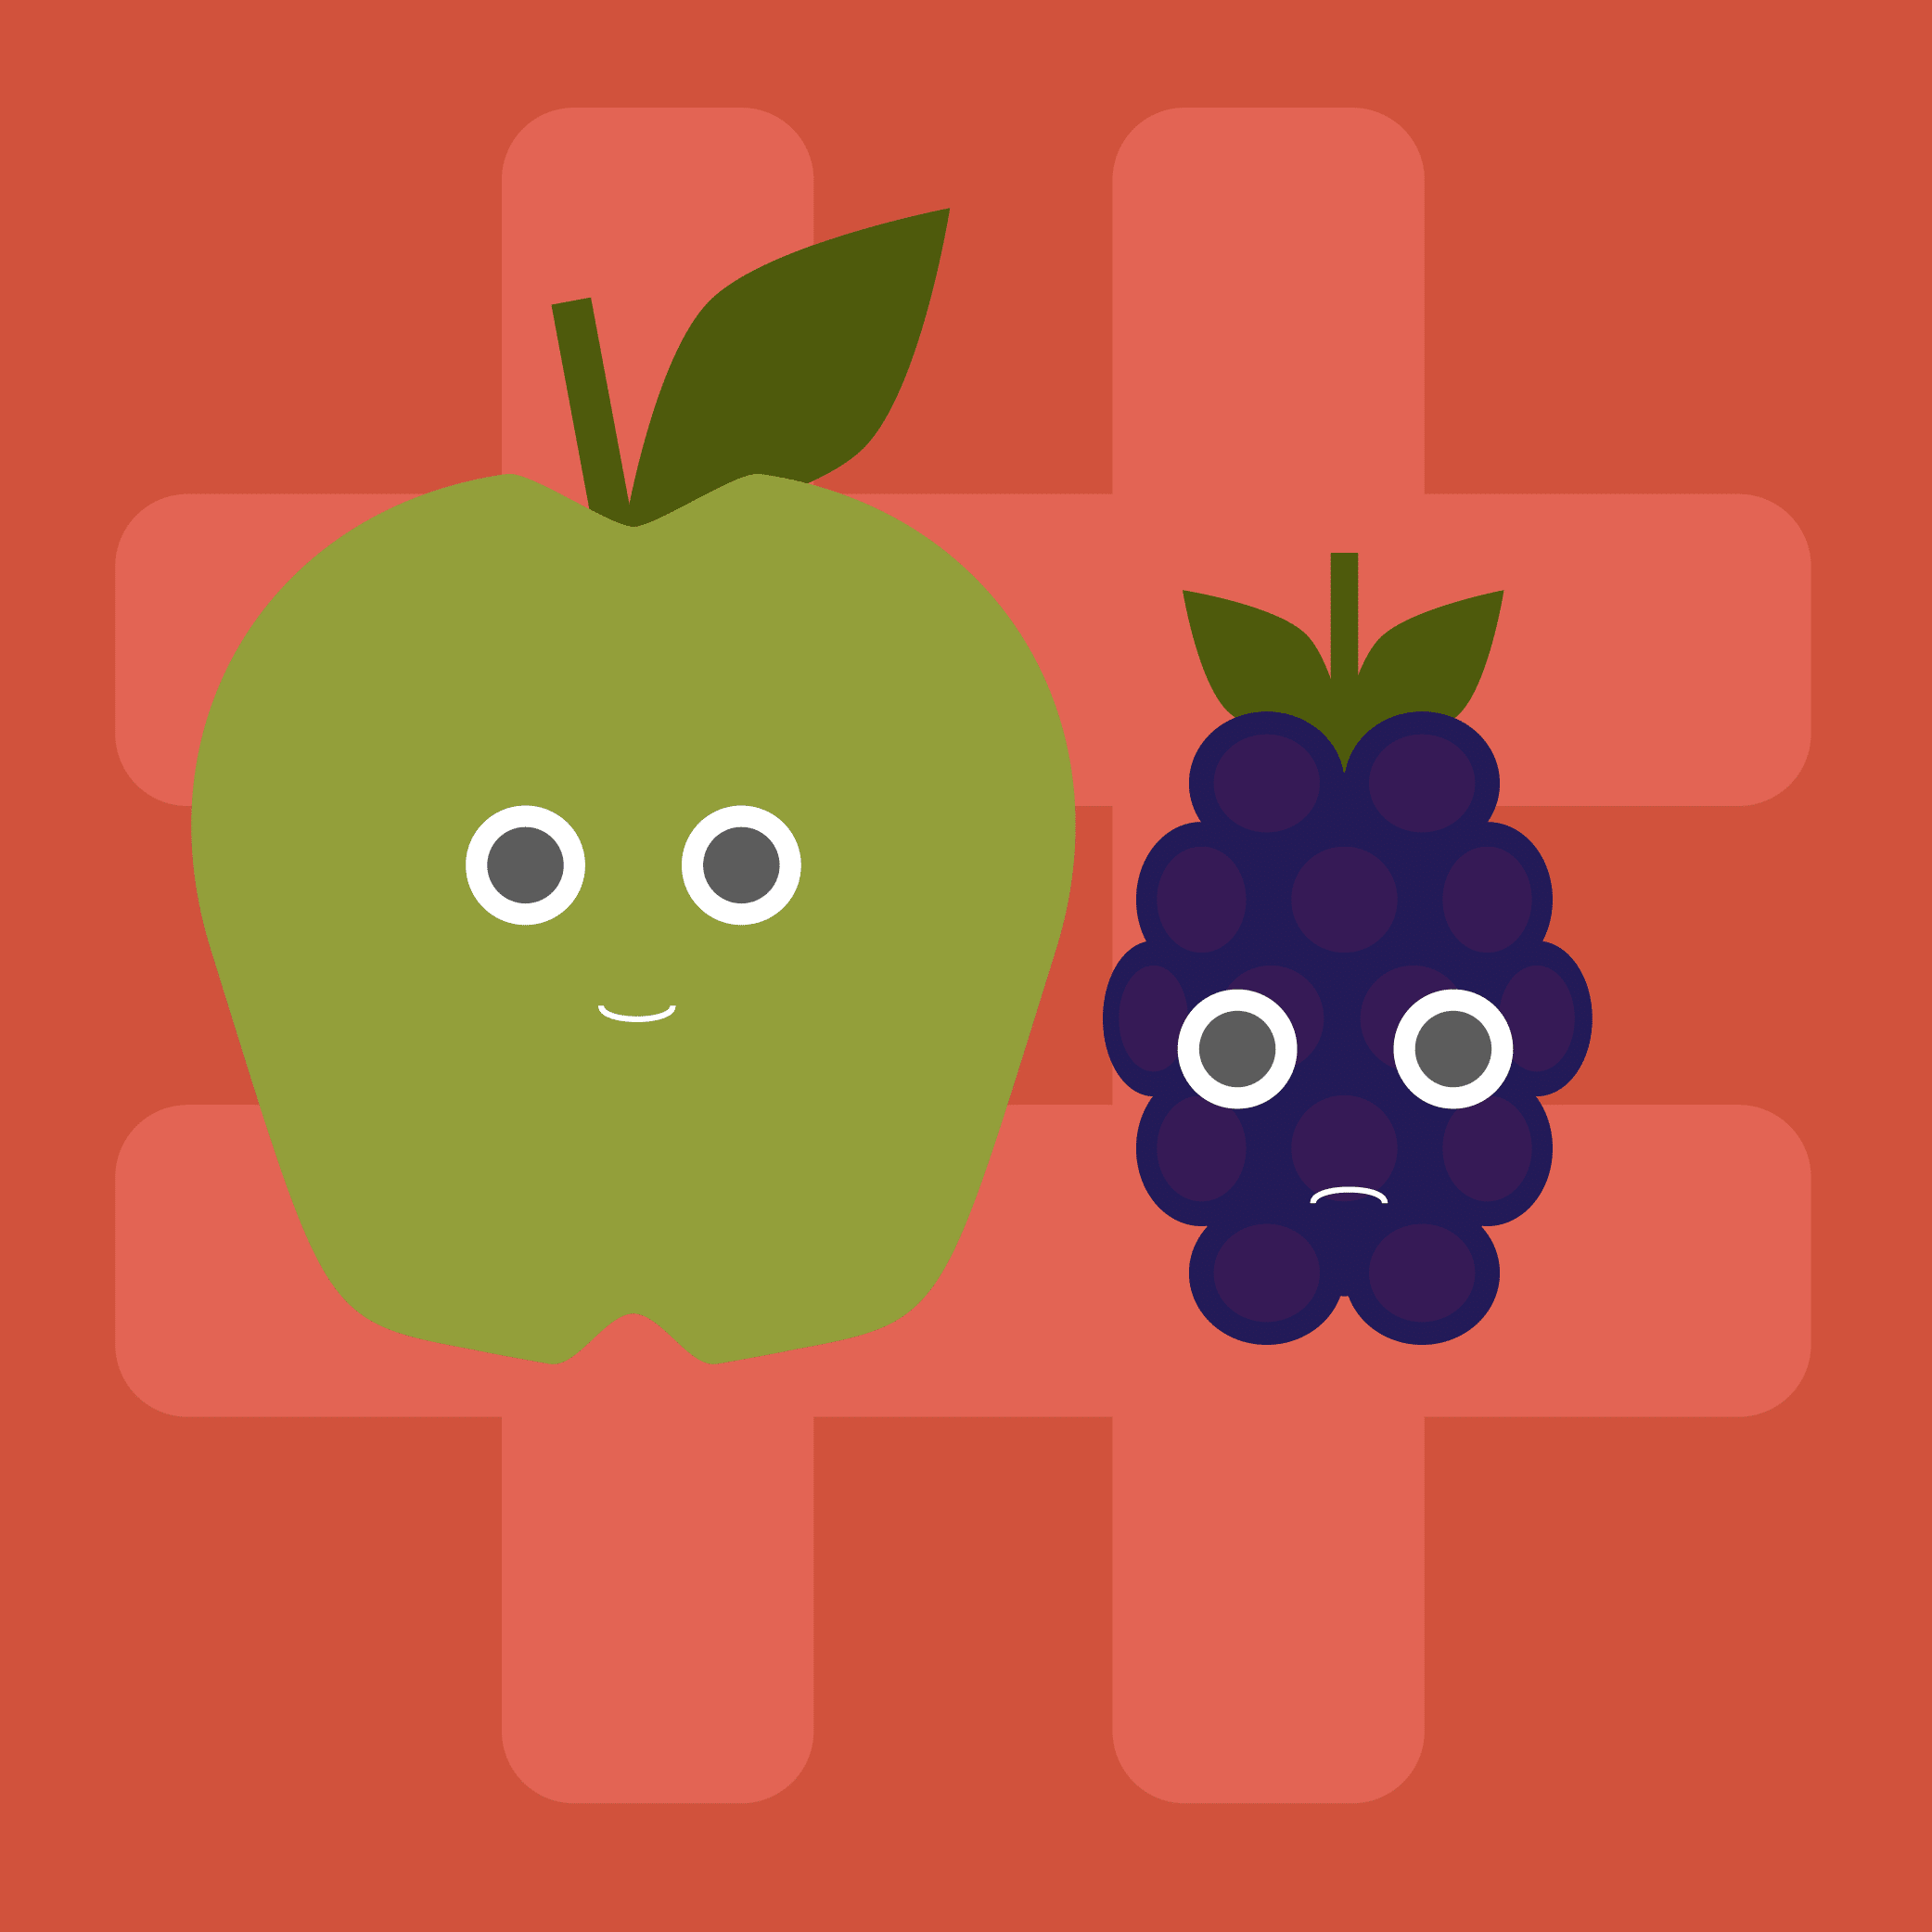 Illustration of an apple and a blackberry, representing Apple's success.